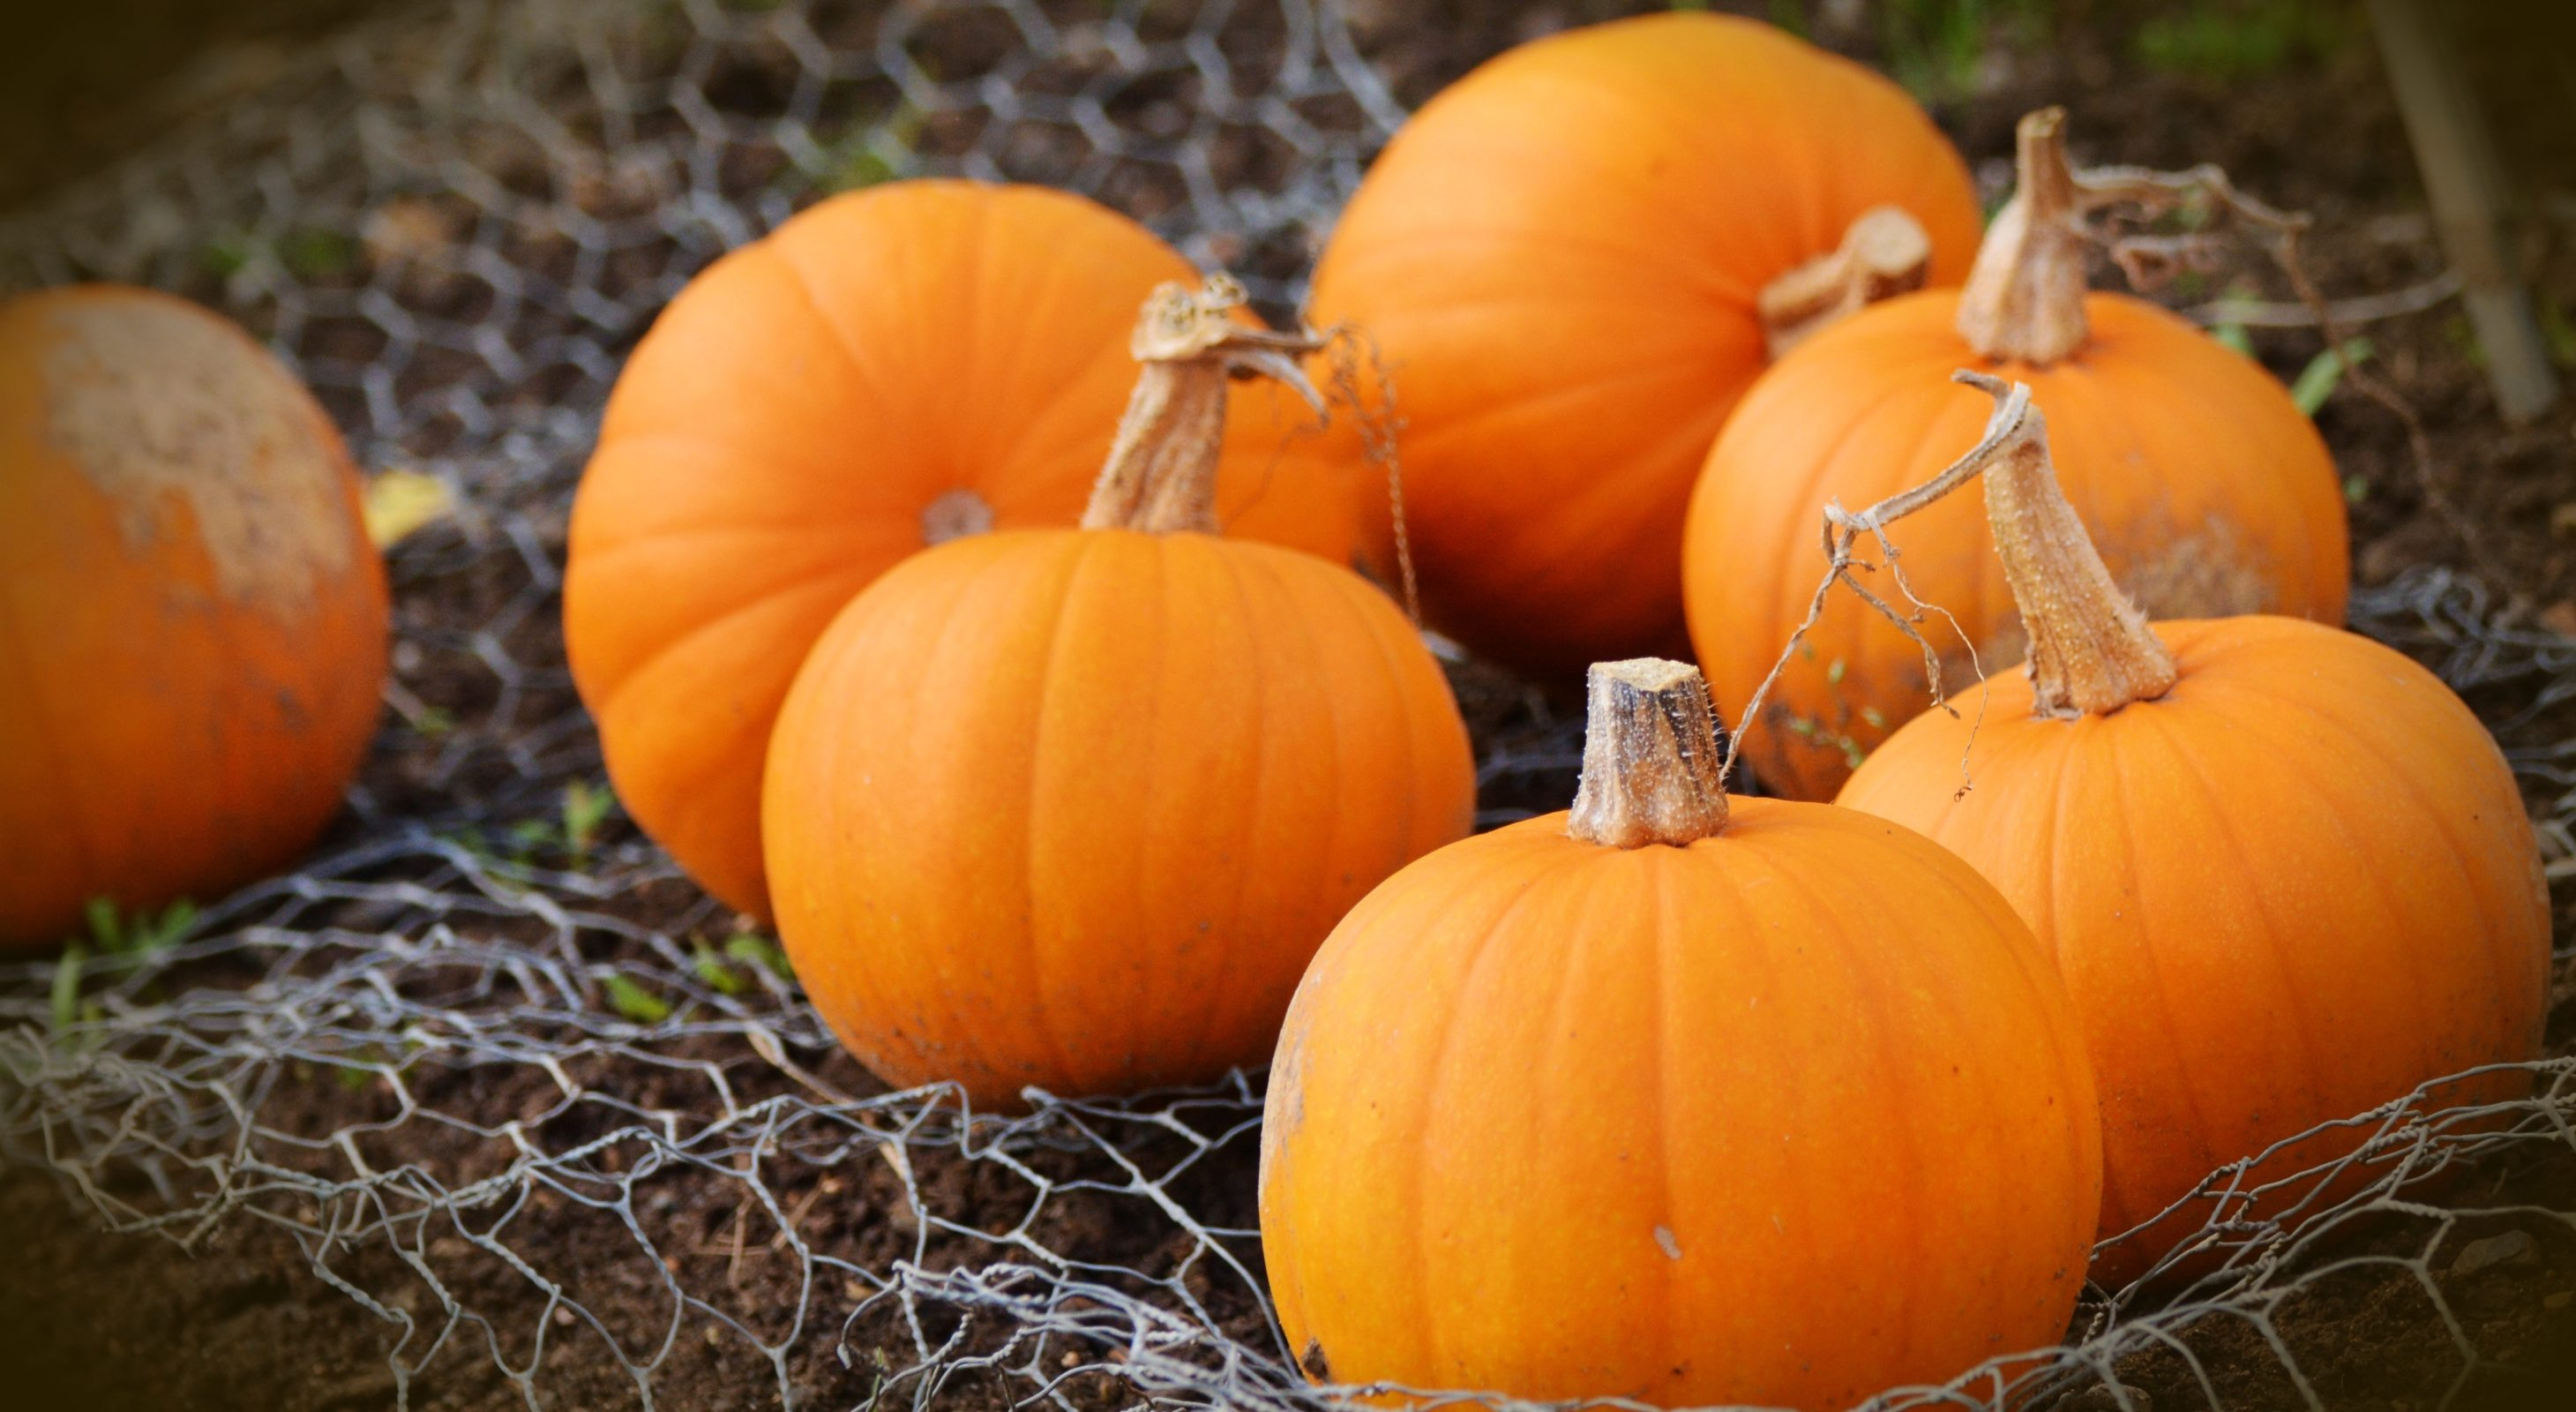 Bright orange pumpkins on a bed of wire mesh